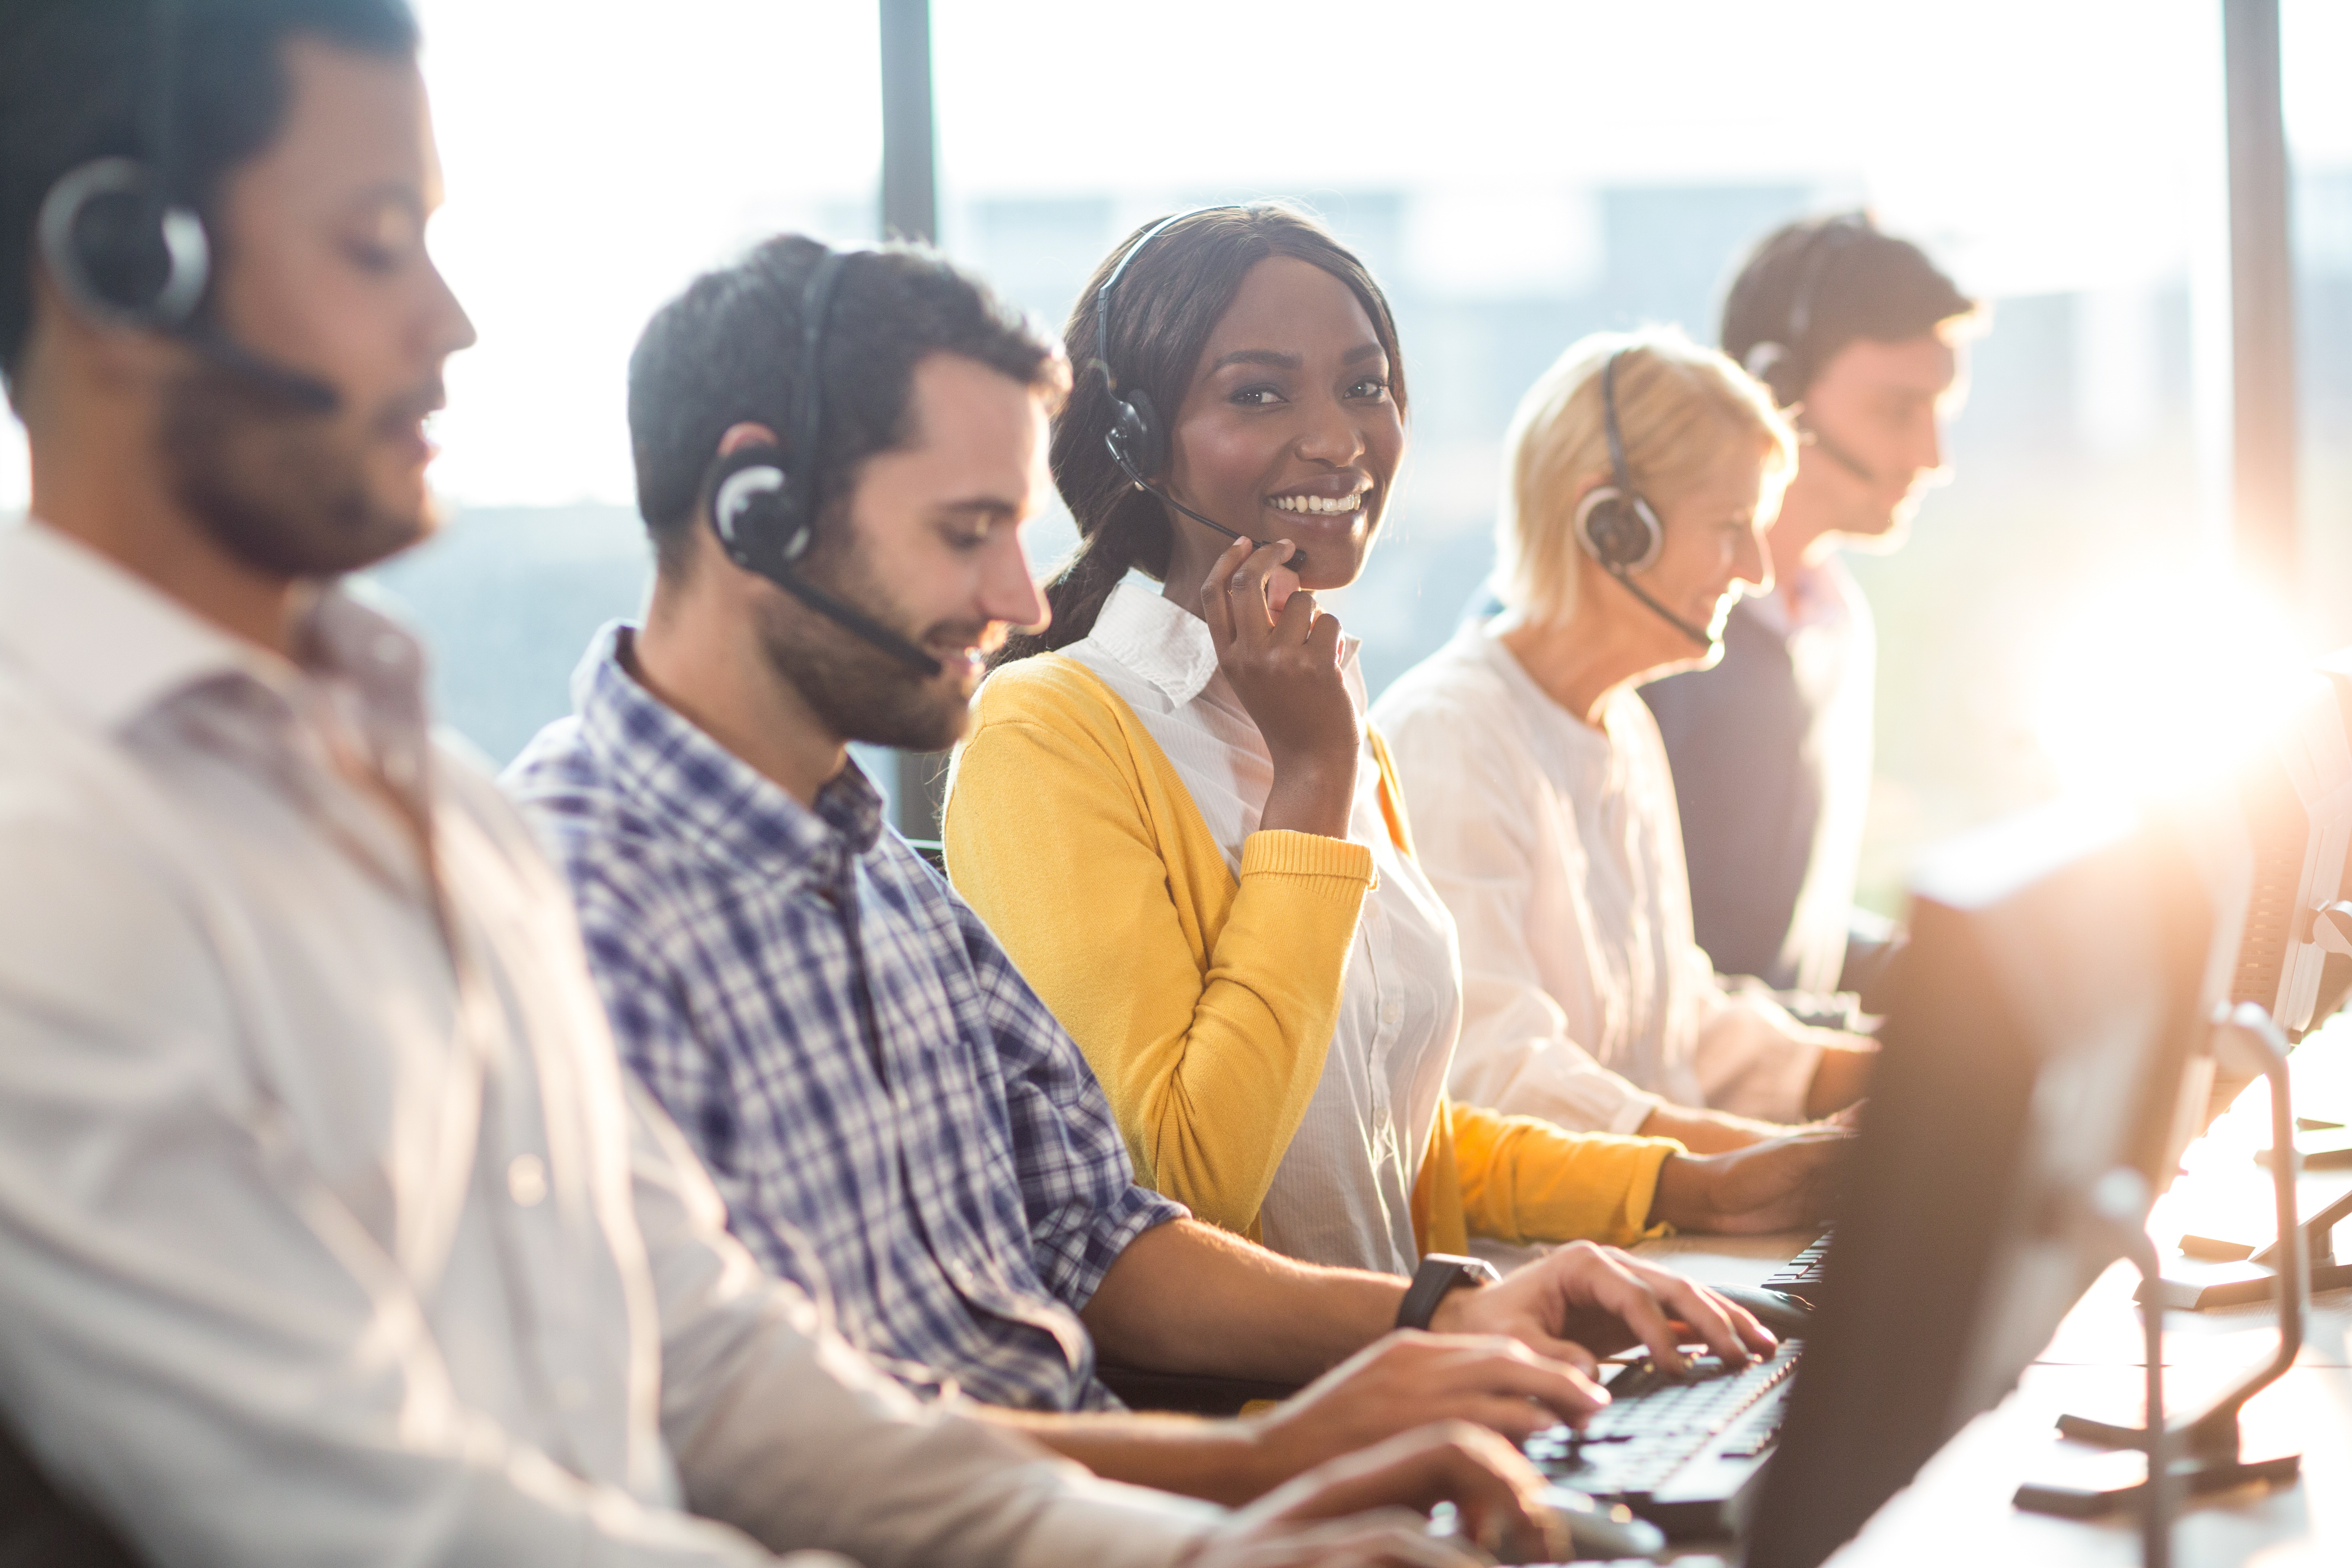 Retail call center agents